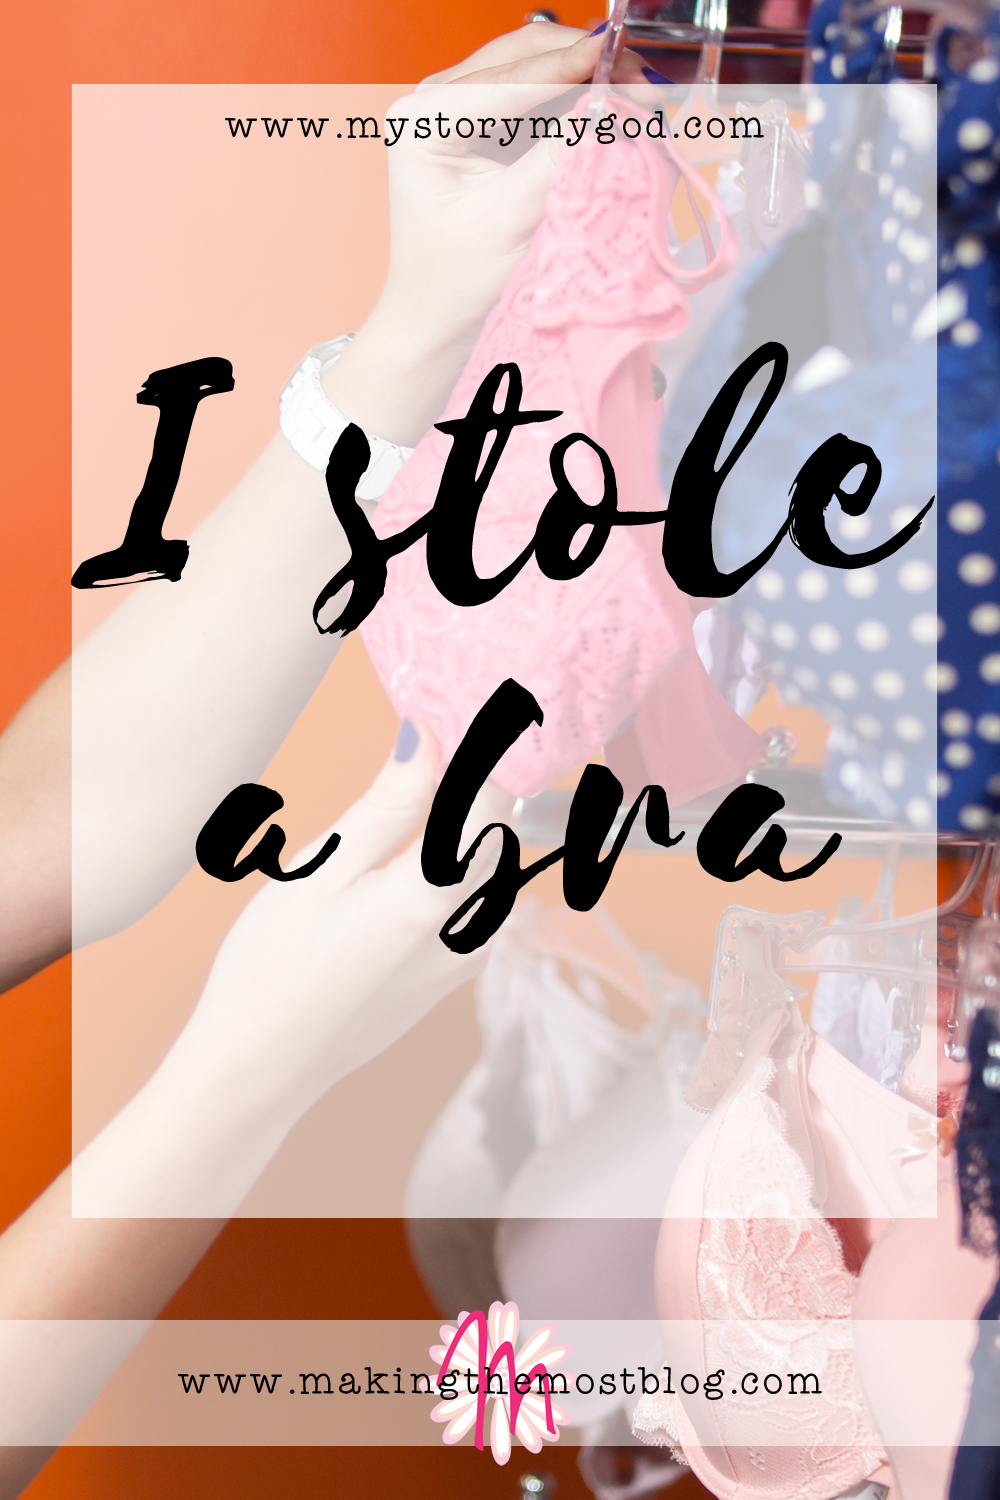 I Stole a Bra | Making the Most Blog